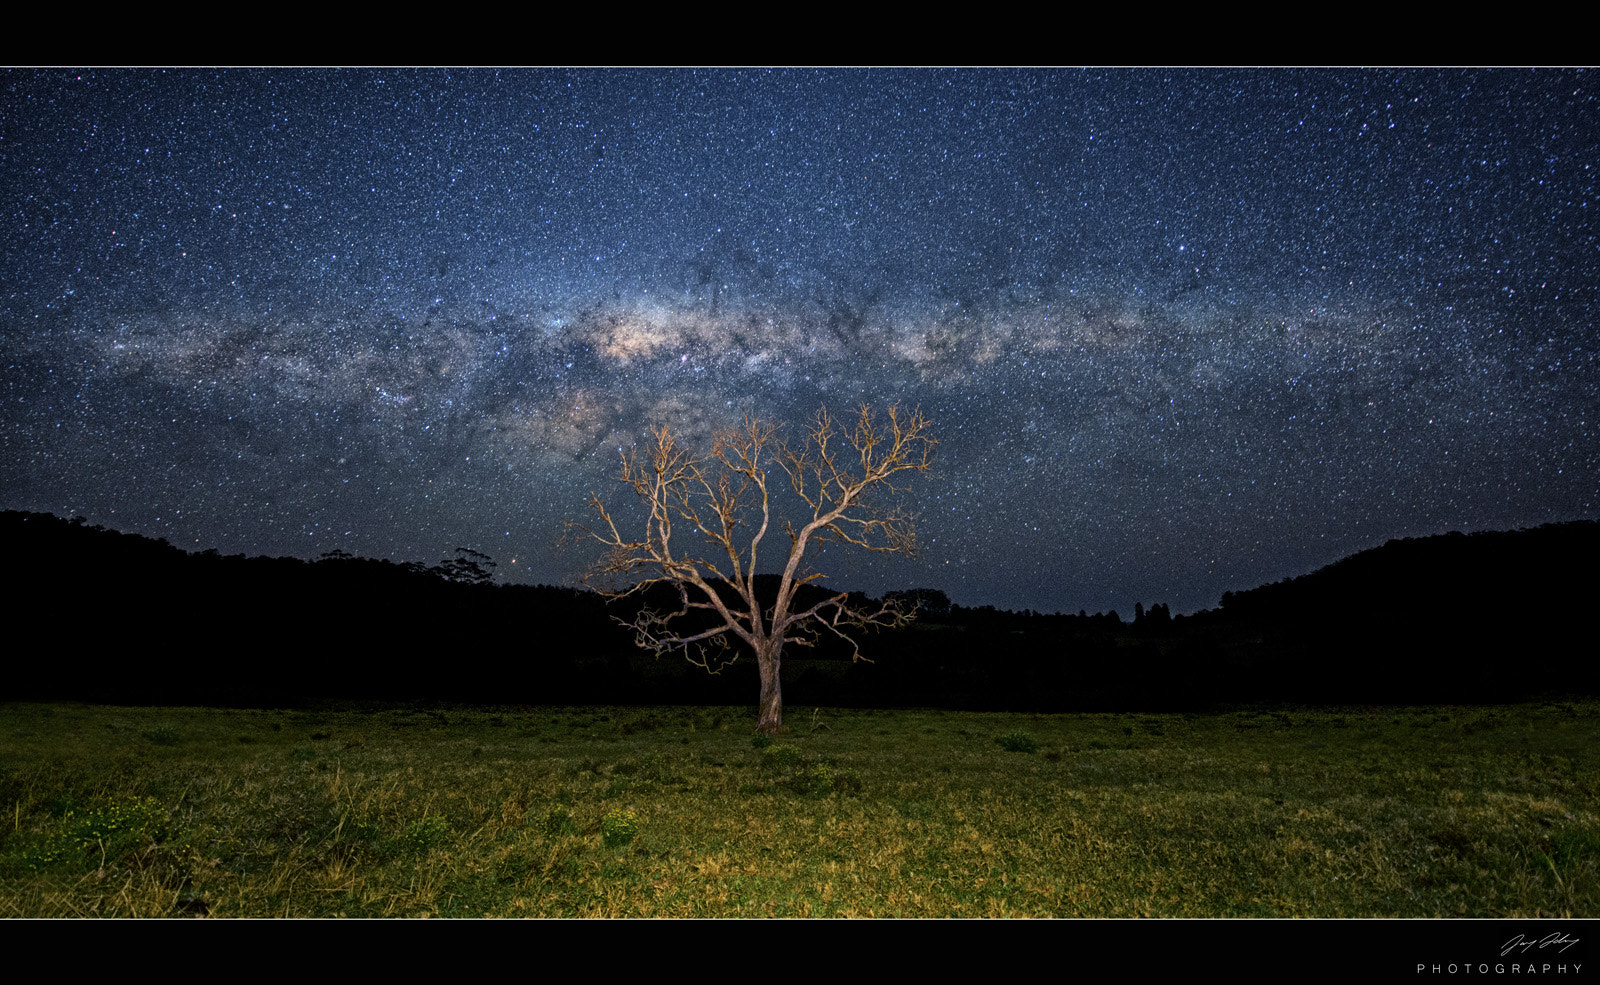 Photograph untitled by Jay Daley on 500px